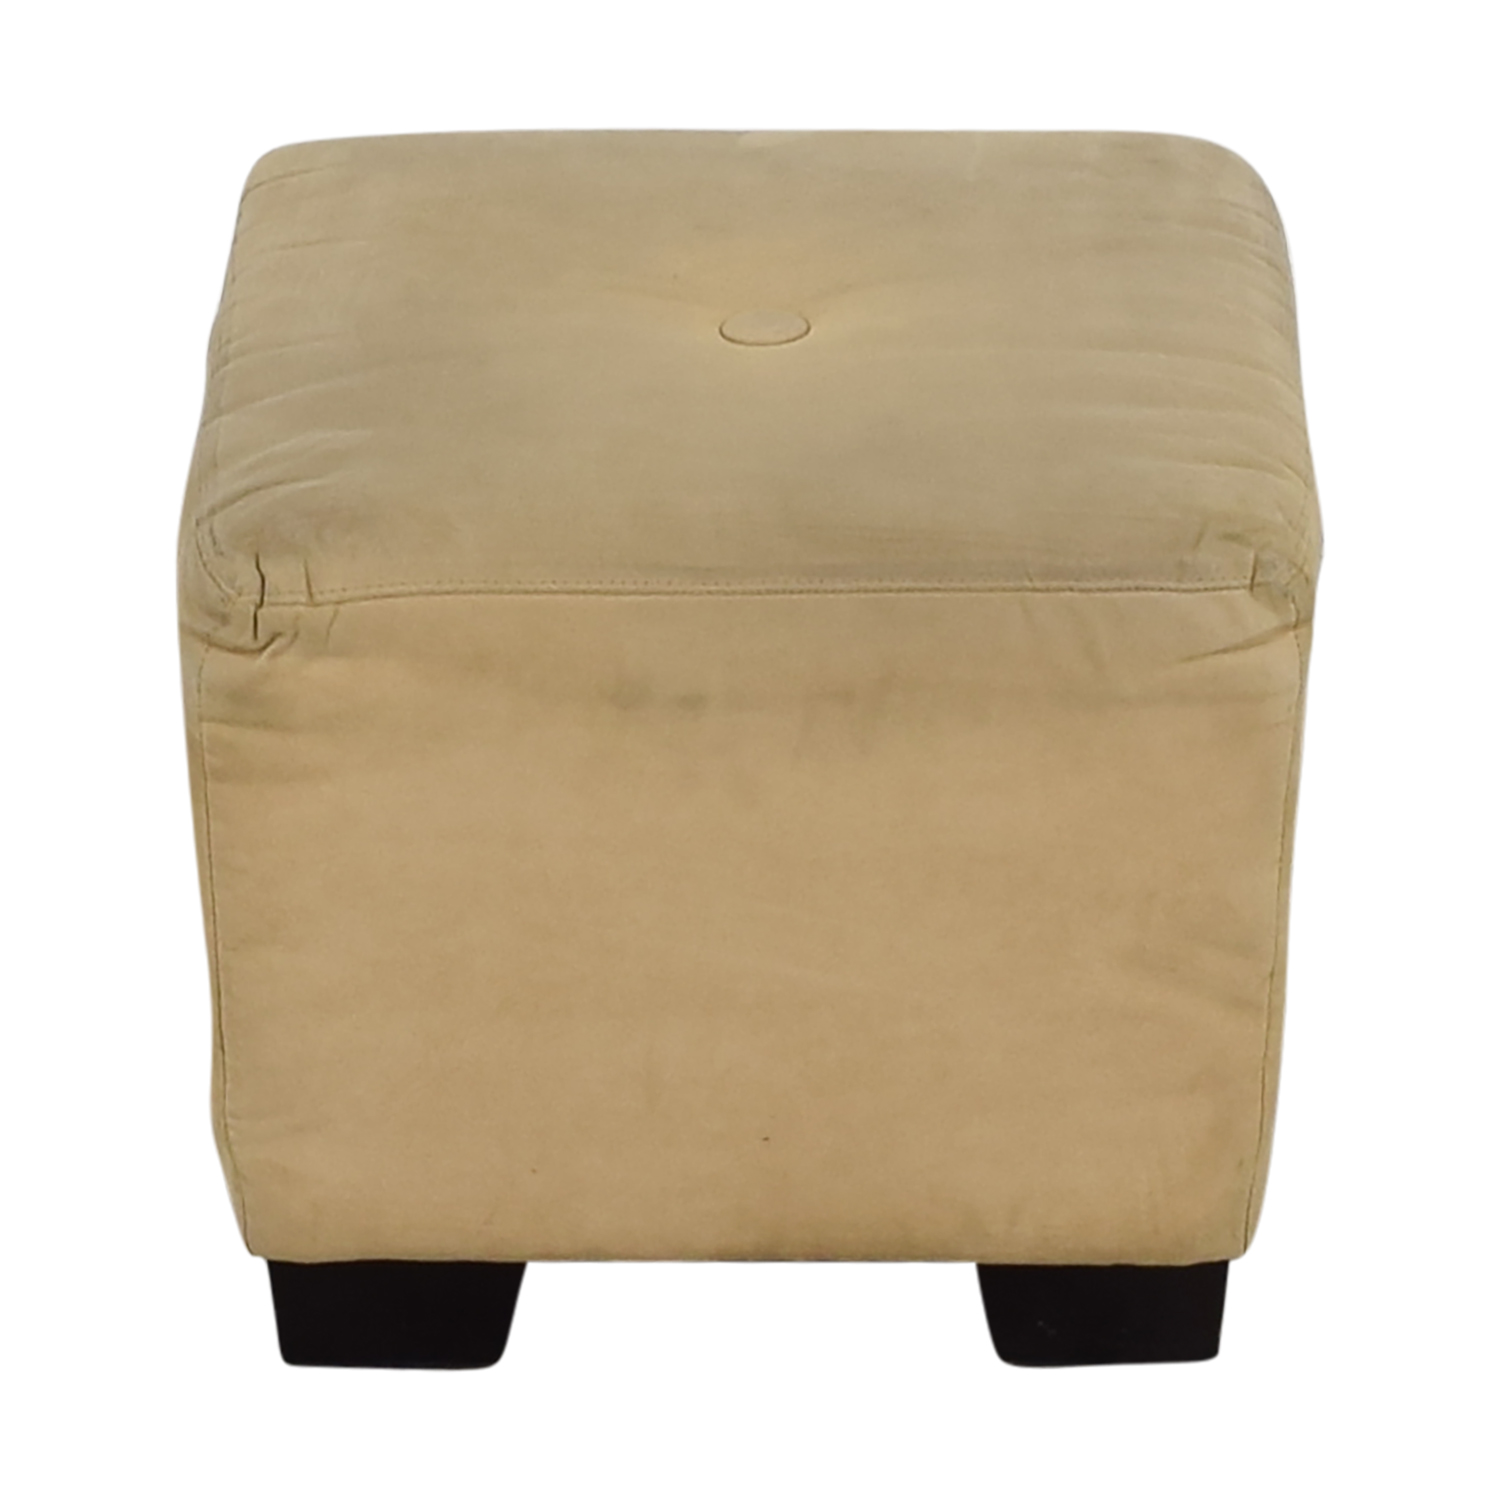 Sherrill Furniture Sherrill Furniture Beige Square Ottoman price